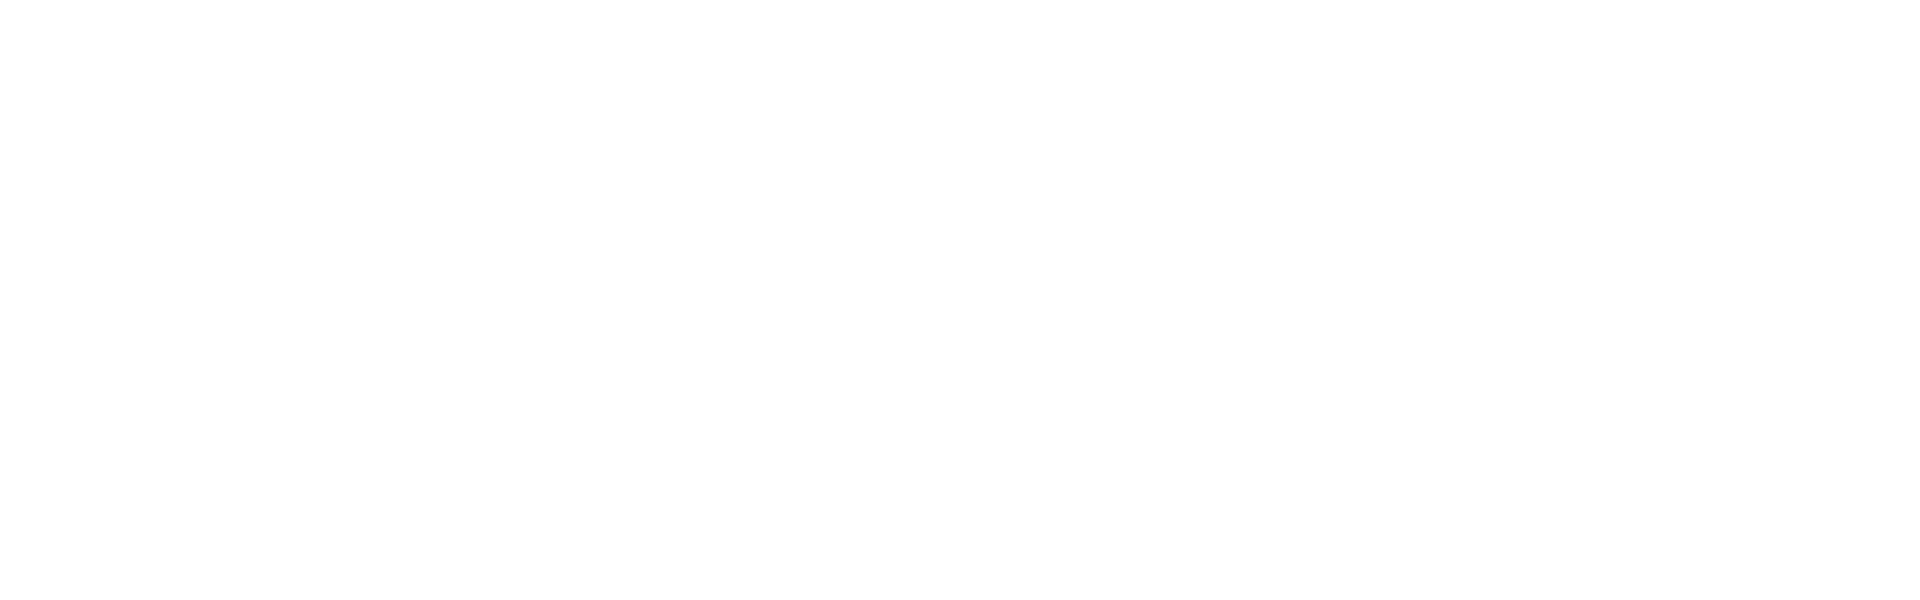 GROUP STUDY PLANS - headers - SPIRITUAL GROWTH.png